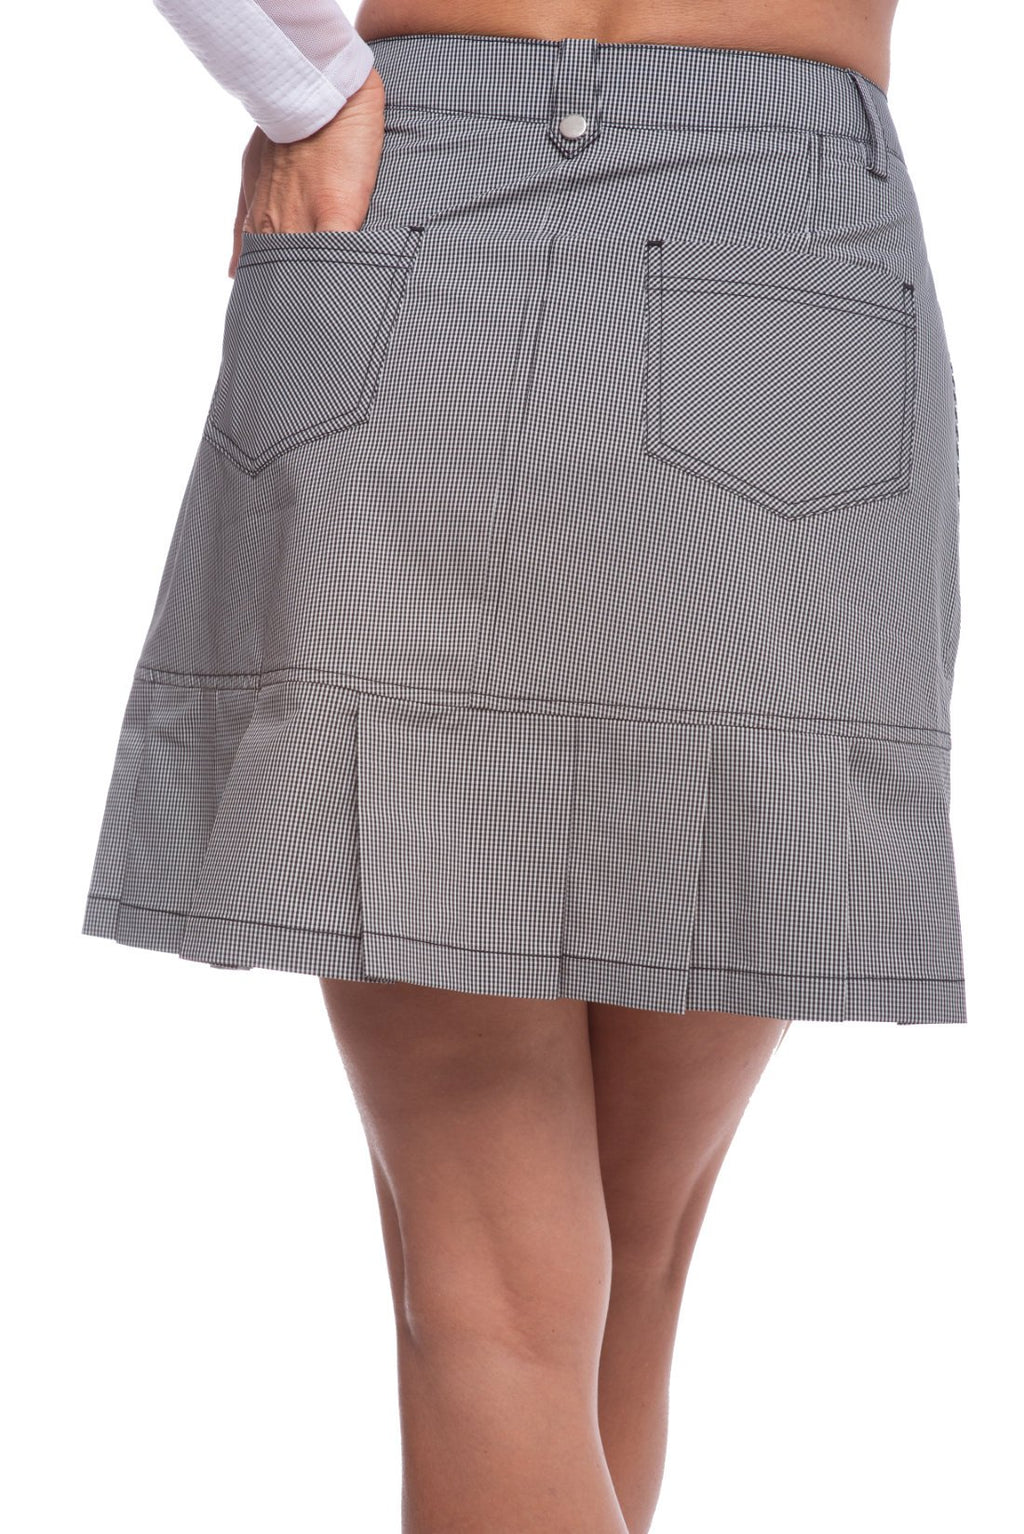 Ibkul Skort Gingham Check Black/White | UPF 50